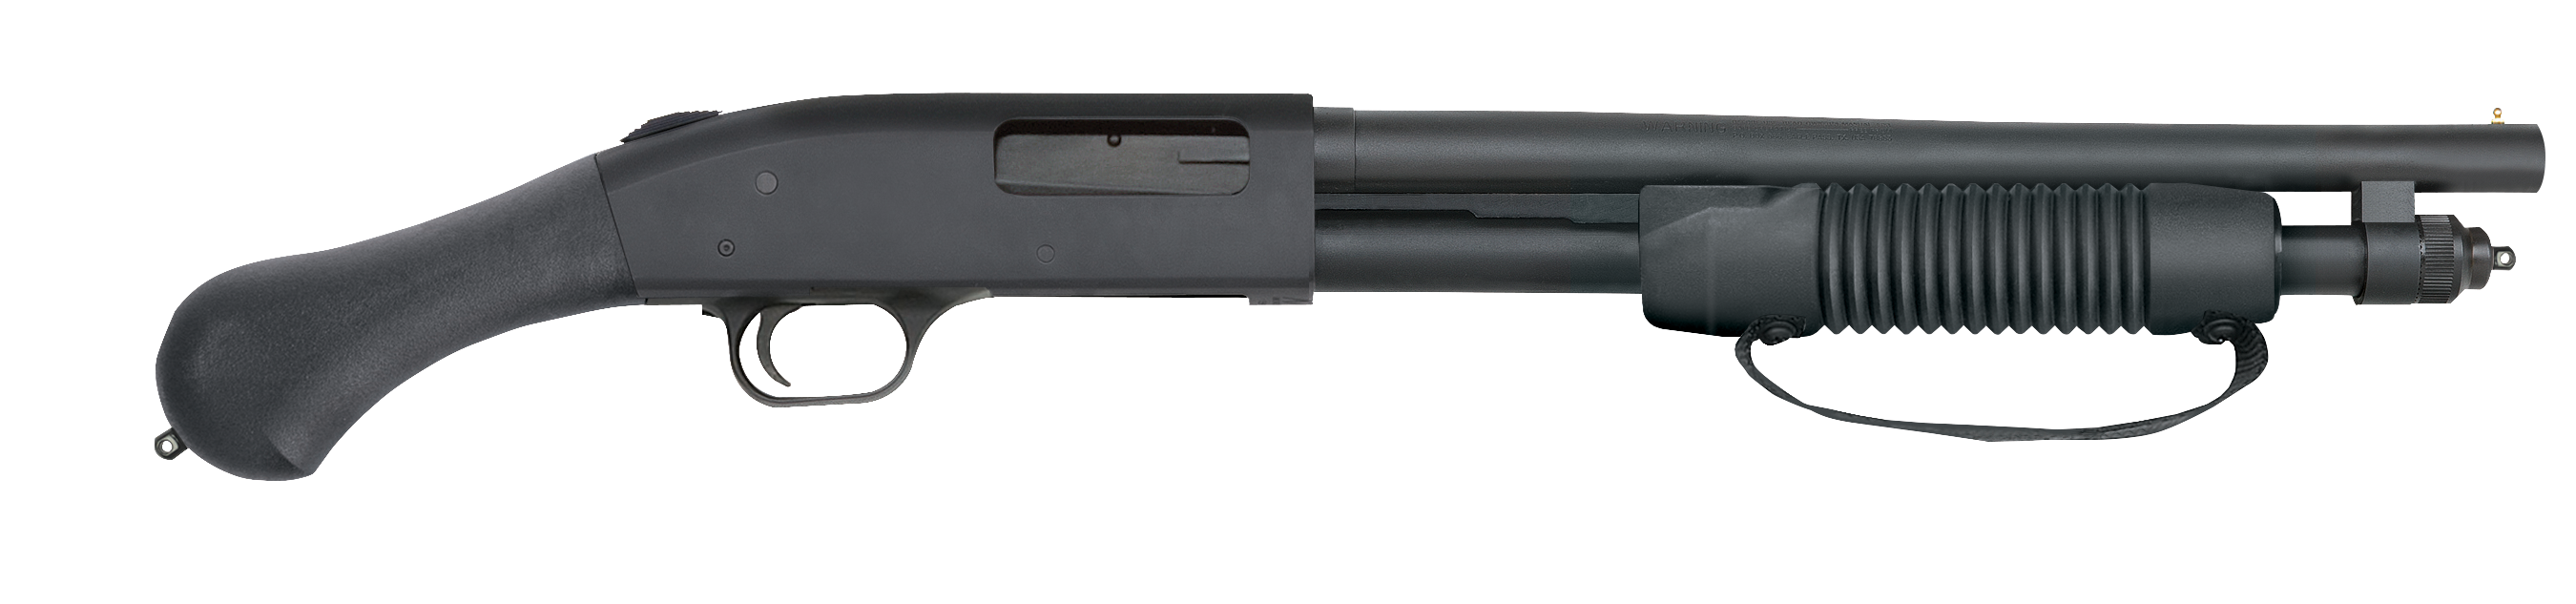 2020 Tenth Place - Mossberg Shockwave 20Gauge